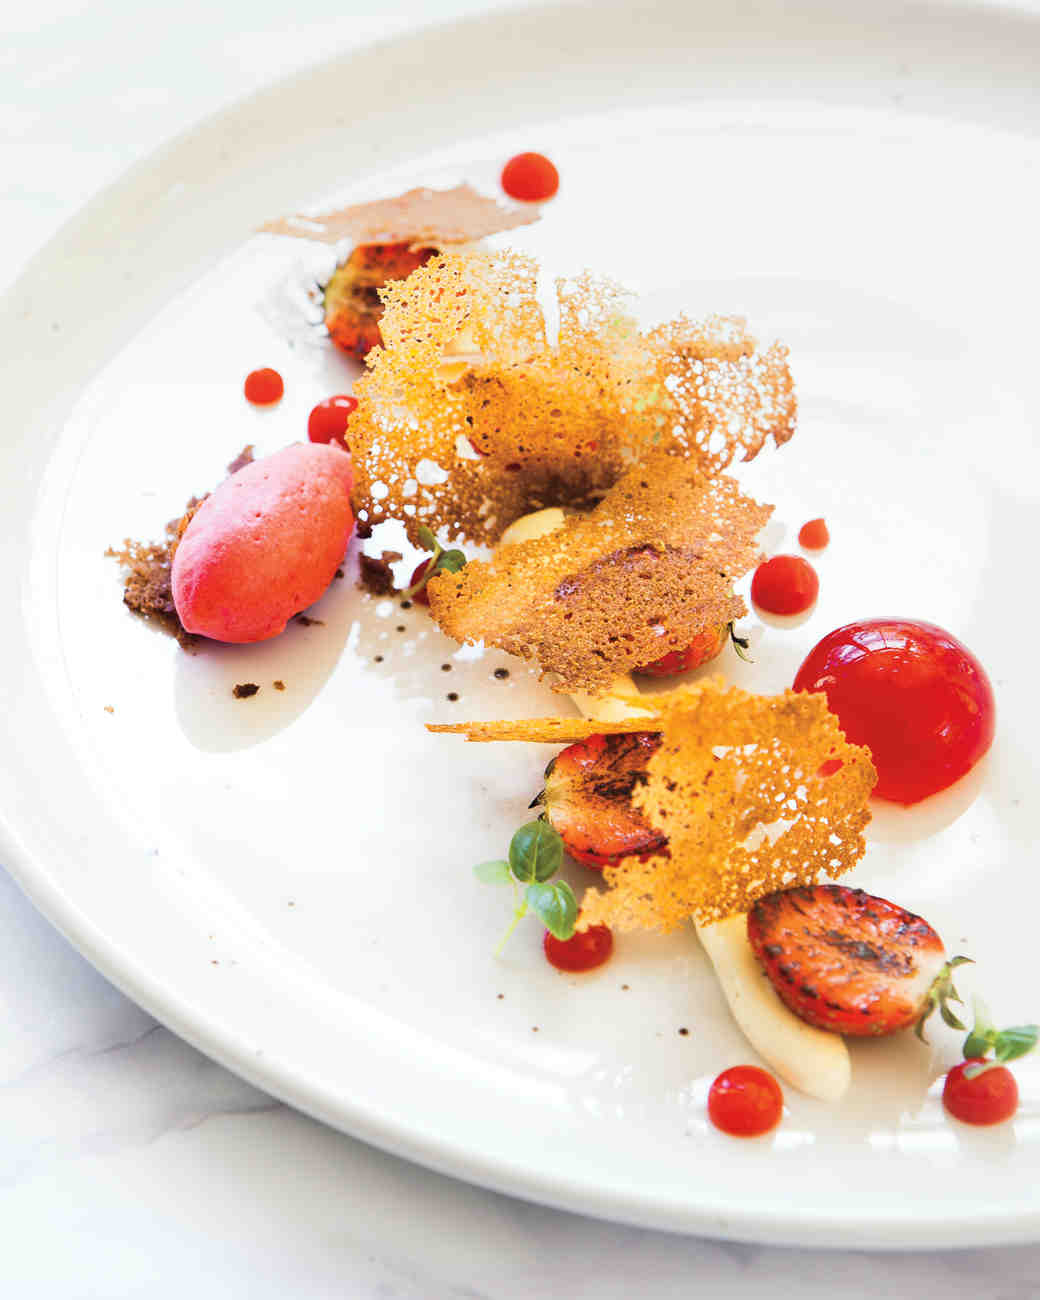 creamed-goats-cheese-with-strawberry-and-gingerbread-s112574.jpg